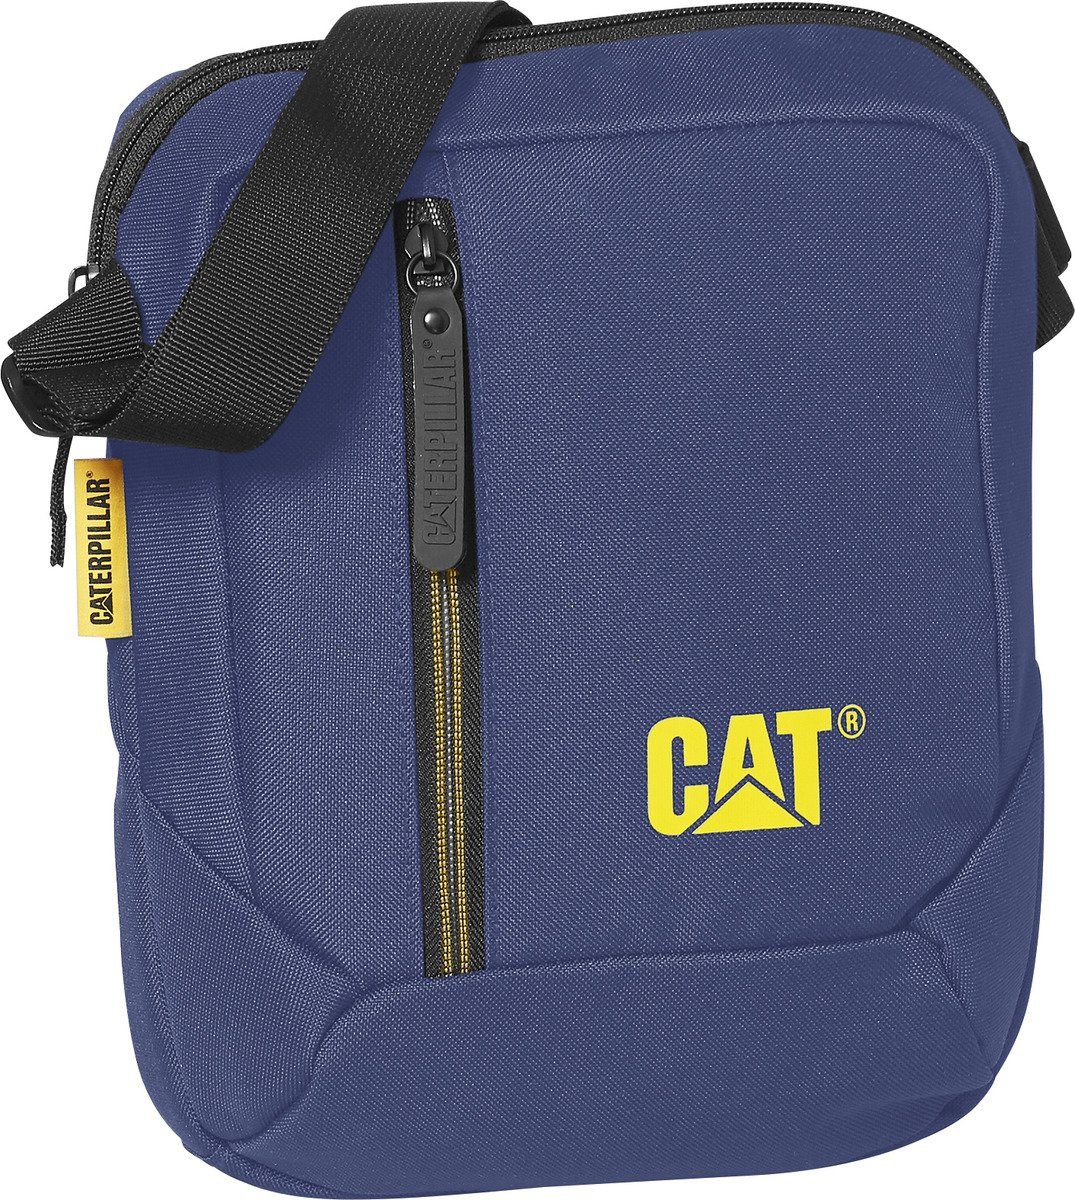 "Torba CAT Caterpillar na tablet do 10""  The Project niebieska"